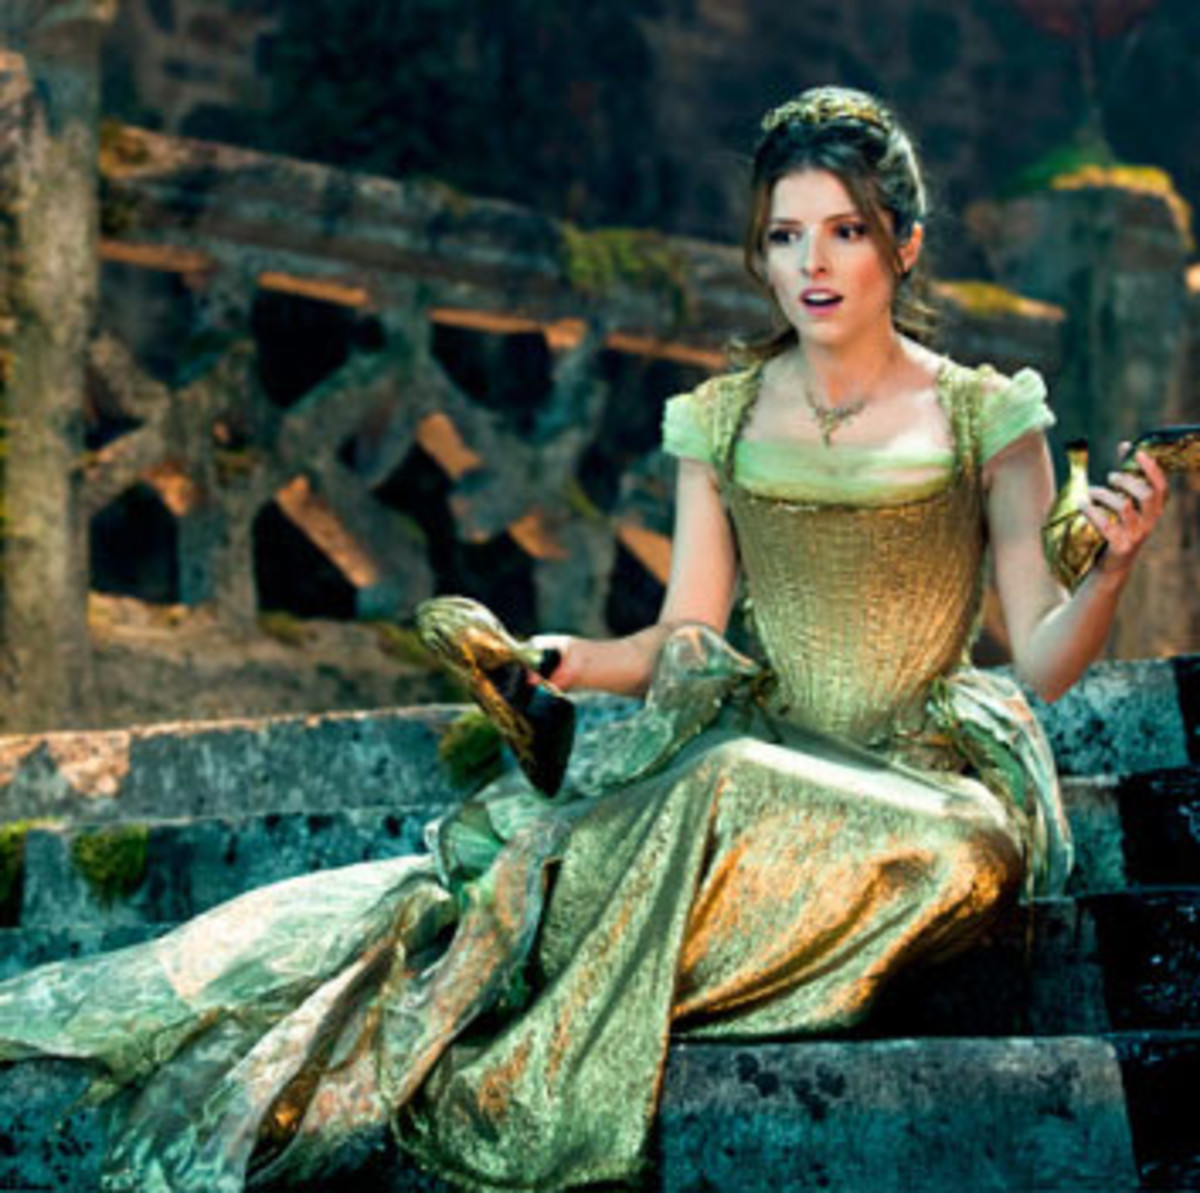 Anna Kendrick as Cinderella, Into the Woods